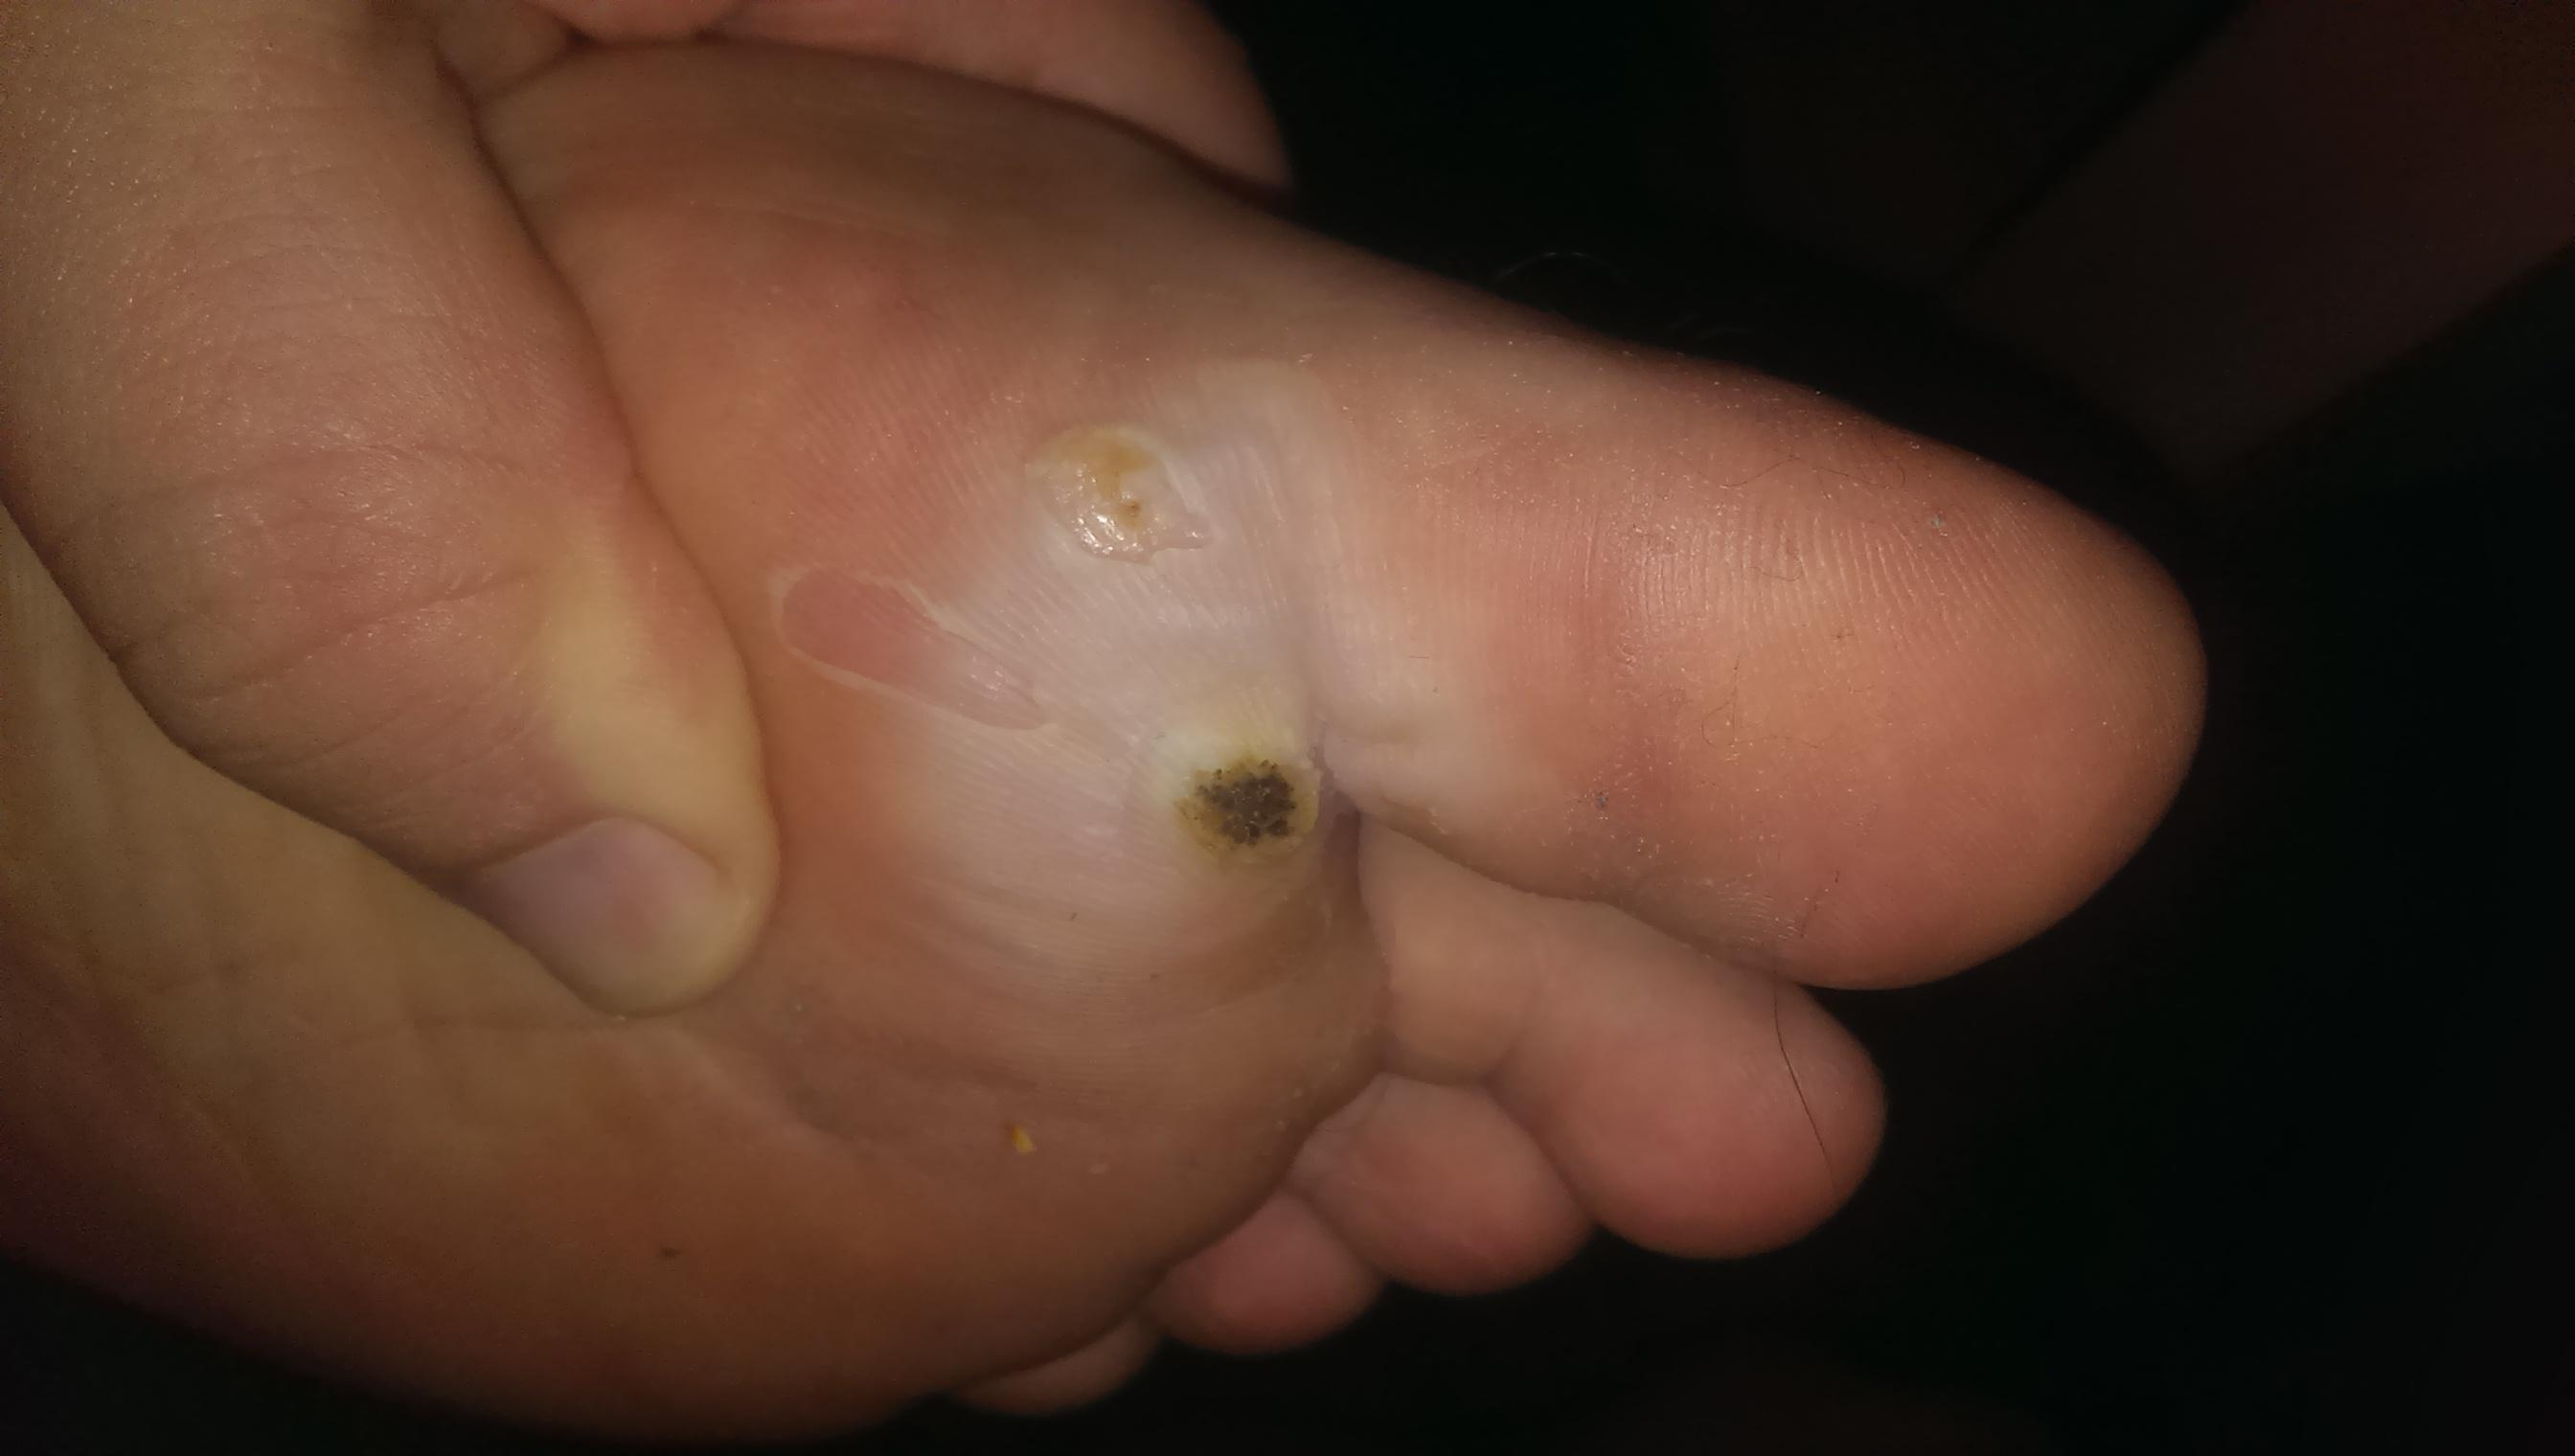 wart treatment reddit